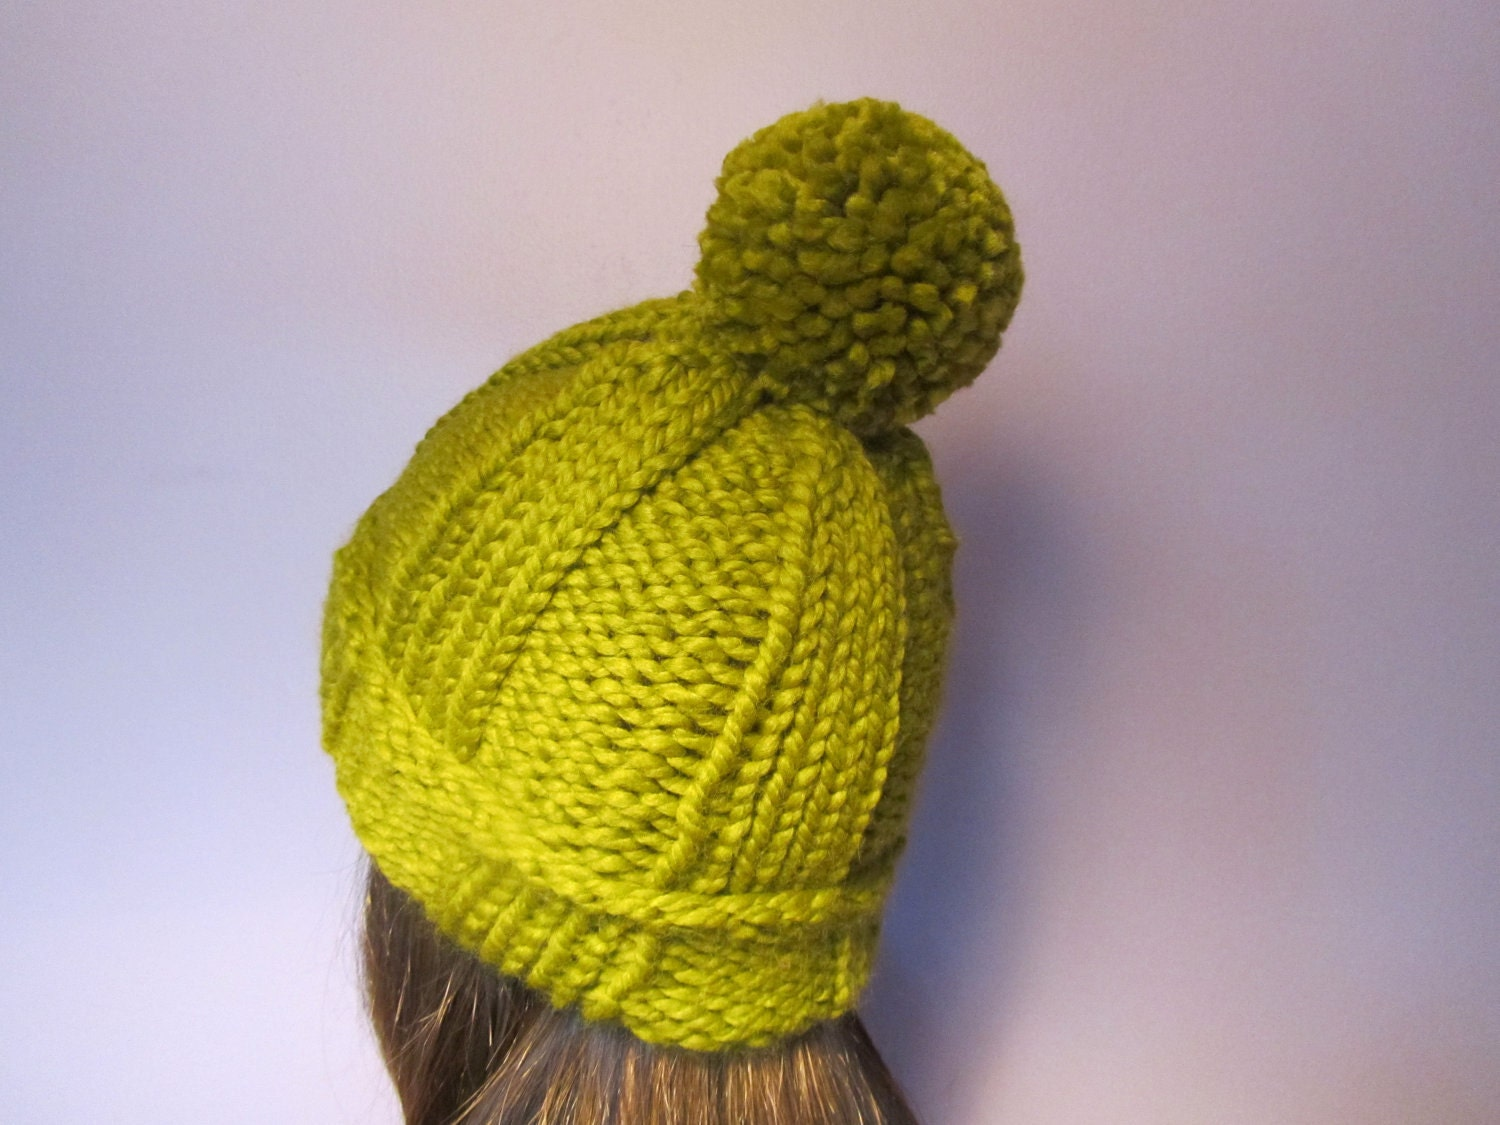 Knit Pom Pom Hat Pattern : PATTERN Folded Brim Ribbed Knit Hat with Pom Pom PDF Knit Hat